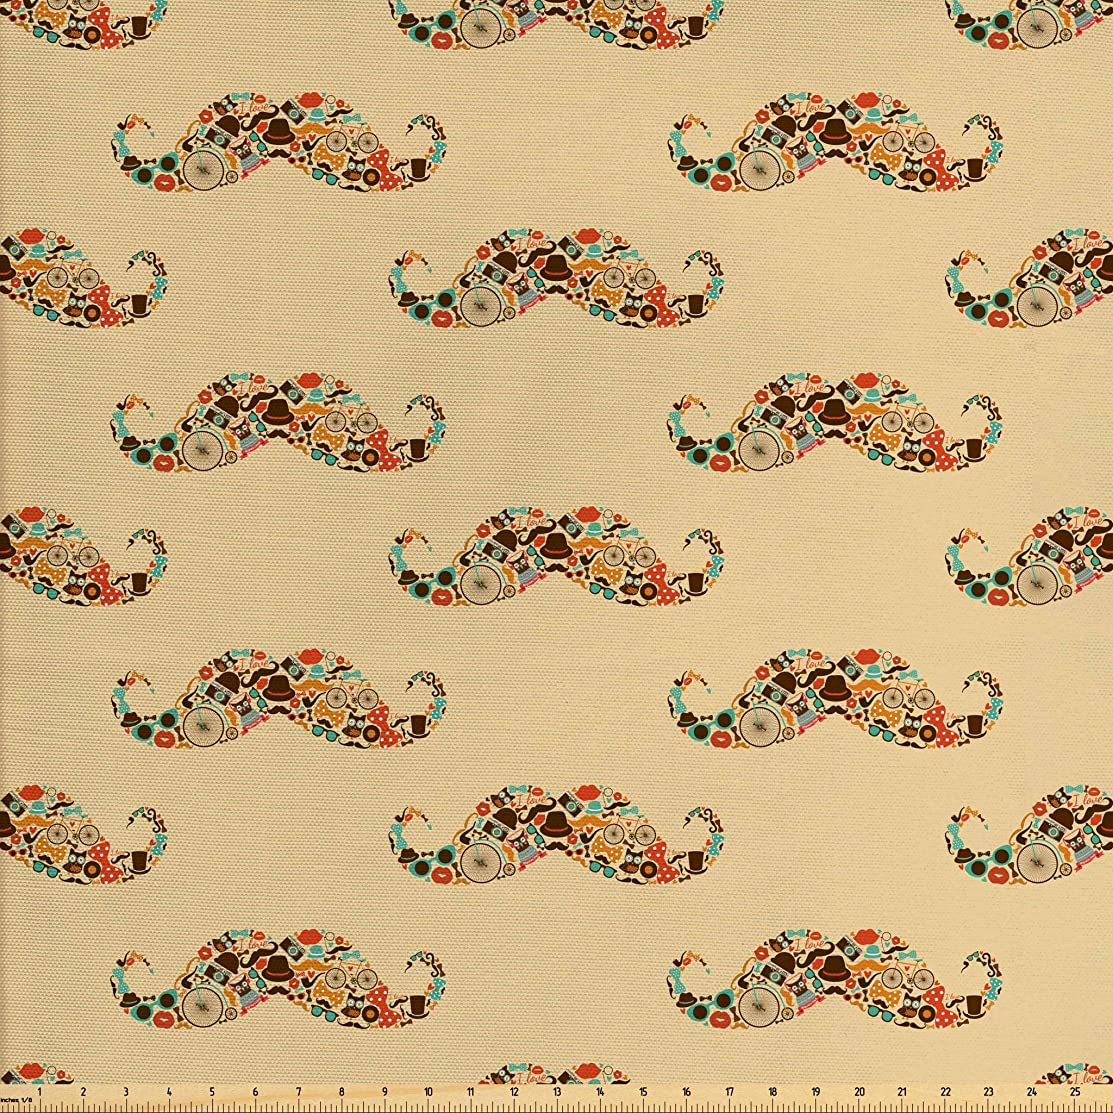 Lunarable Vintage Fabric by The Yard, Oriental Style Hipster Mustache with Pastel Colored Vintage Owl Bicycle Shapes and Pipe, Decorative Fabric for Upholstery and Home Accents, 1 Yard, Ecru